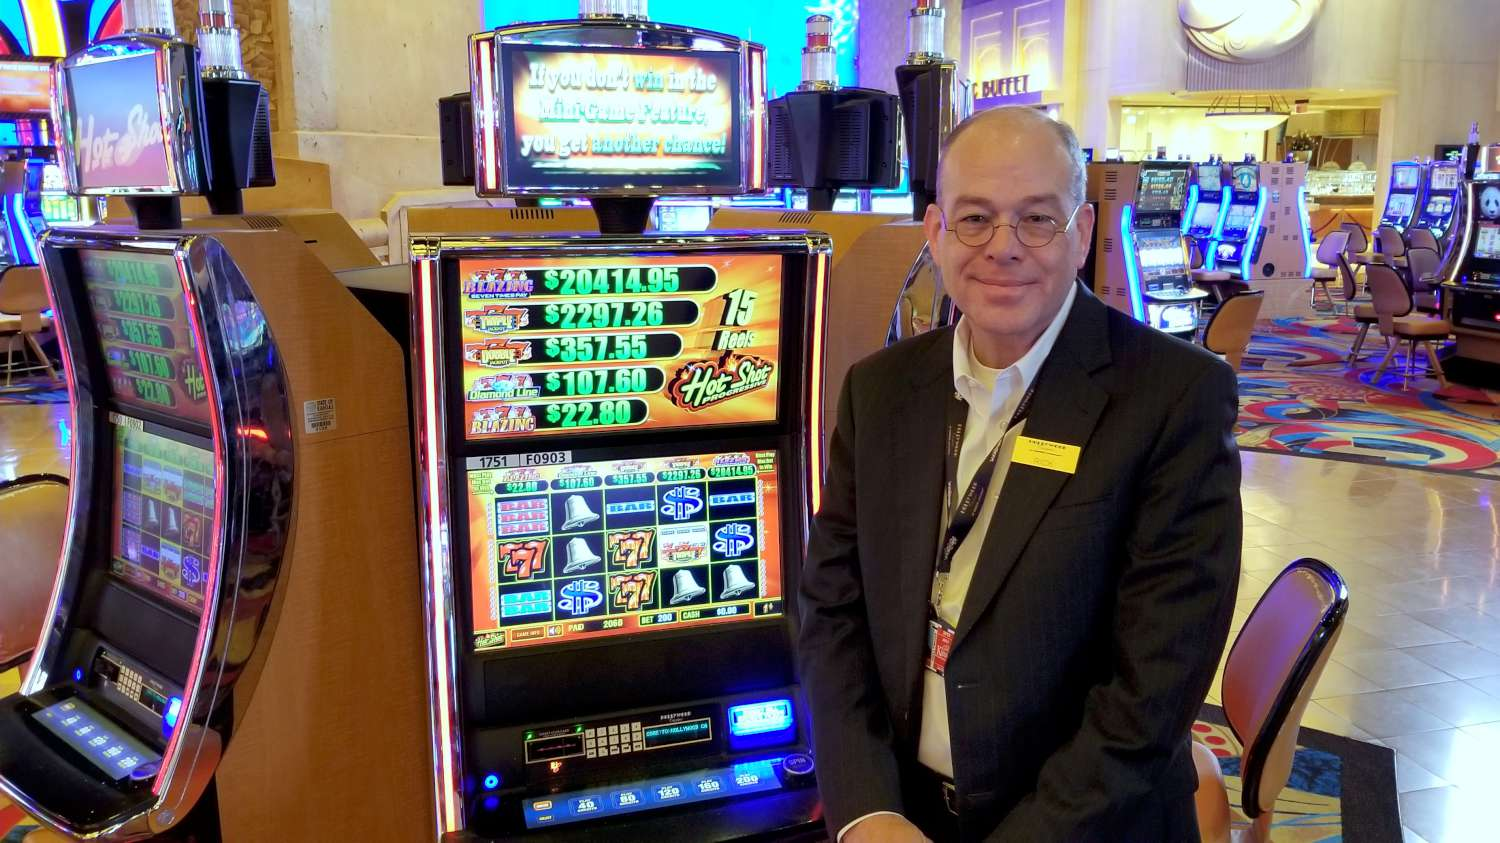 Rick Skinner, the general manager of the Hollywood Casino in Kansas City, Kansas, is ready to take on a sports book operation. (Photo by Stephen Koranda)